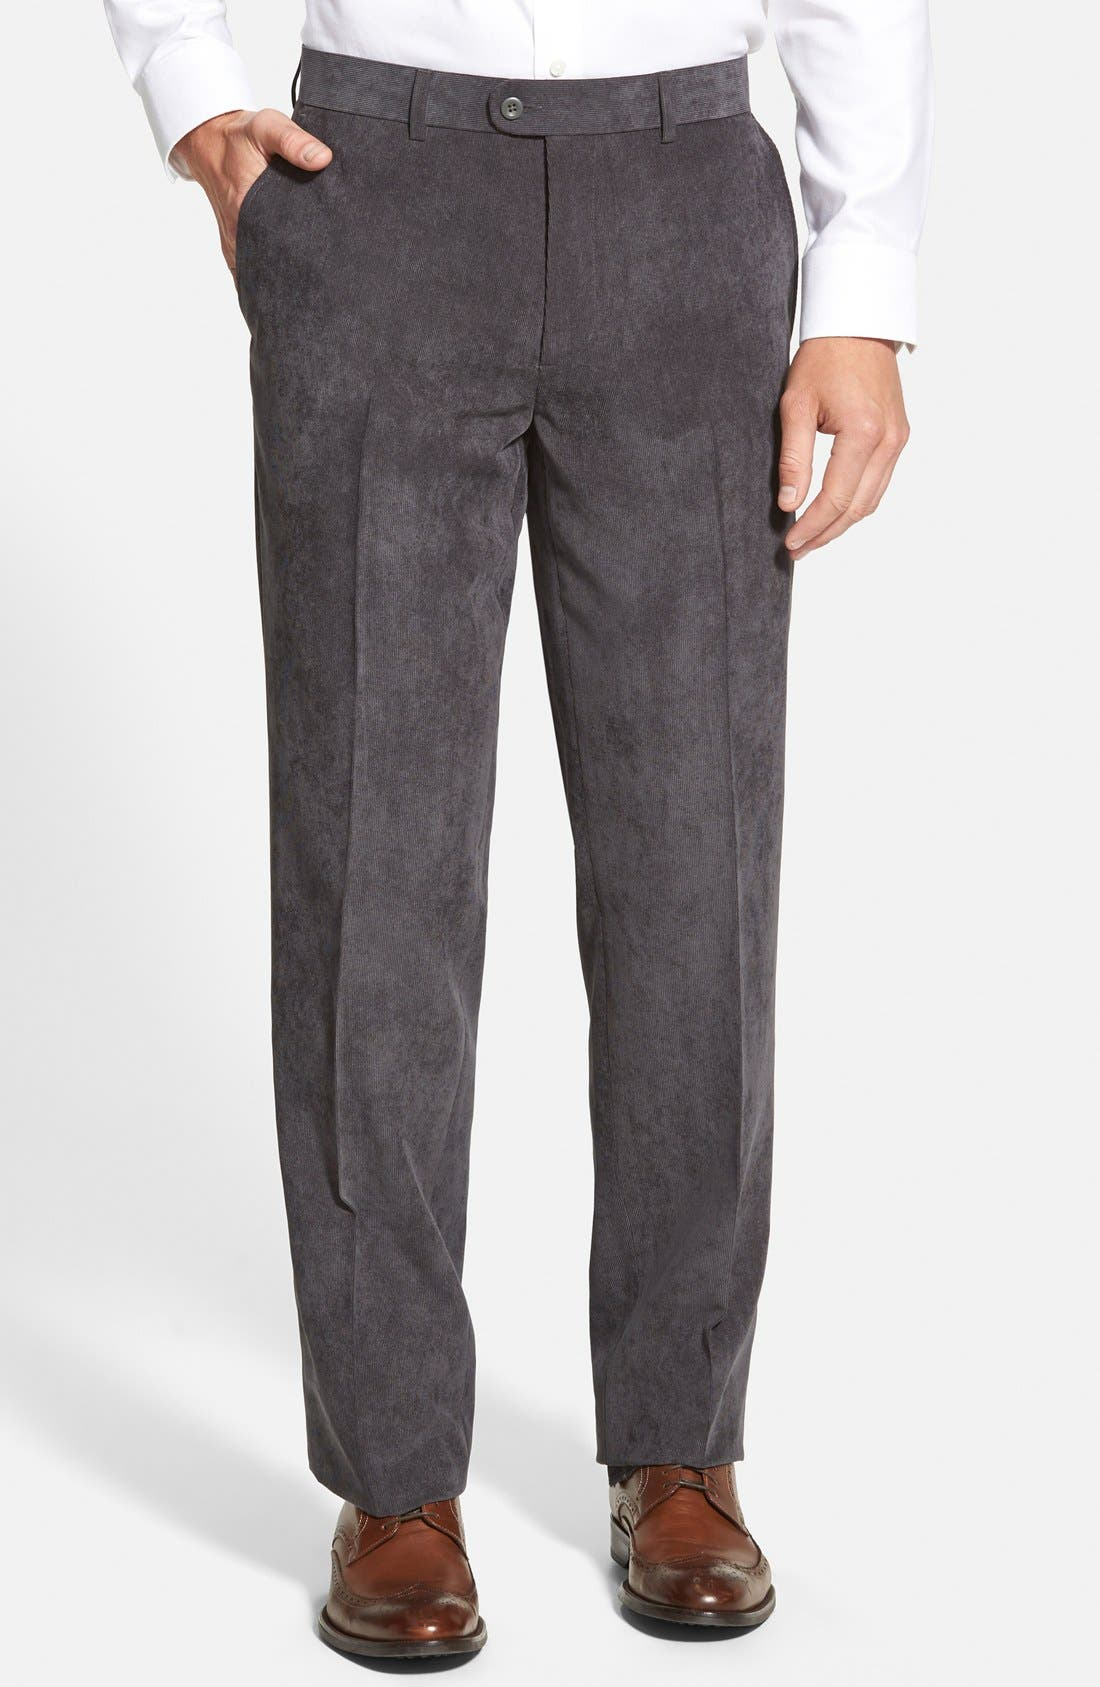 'Micro Air' Wrinkle Resistant Microfiber Corduroy Pants,                             Main thumbnail 1, color,                             Medium Grey